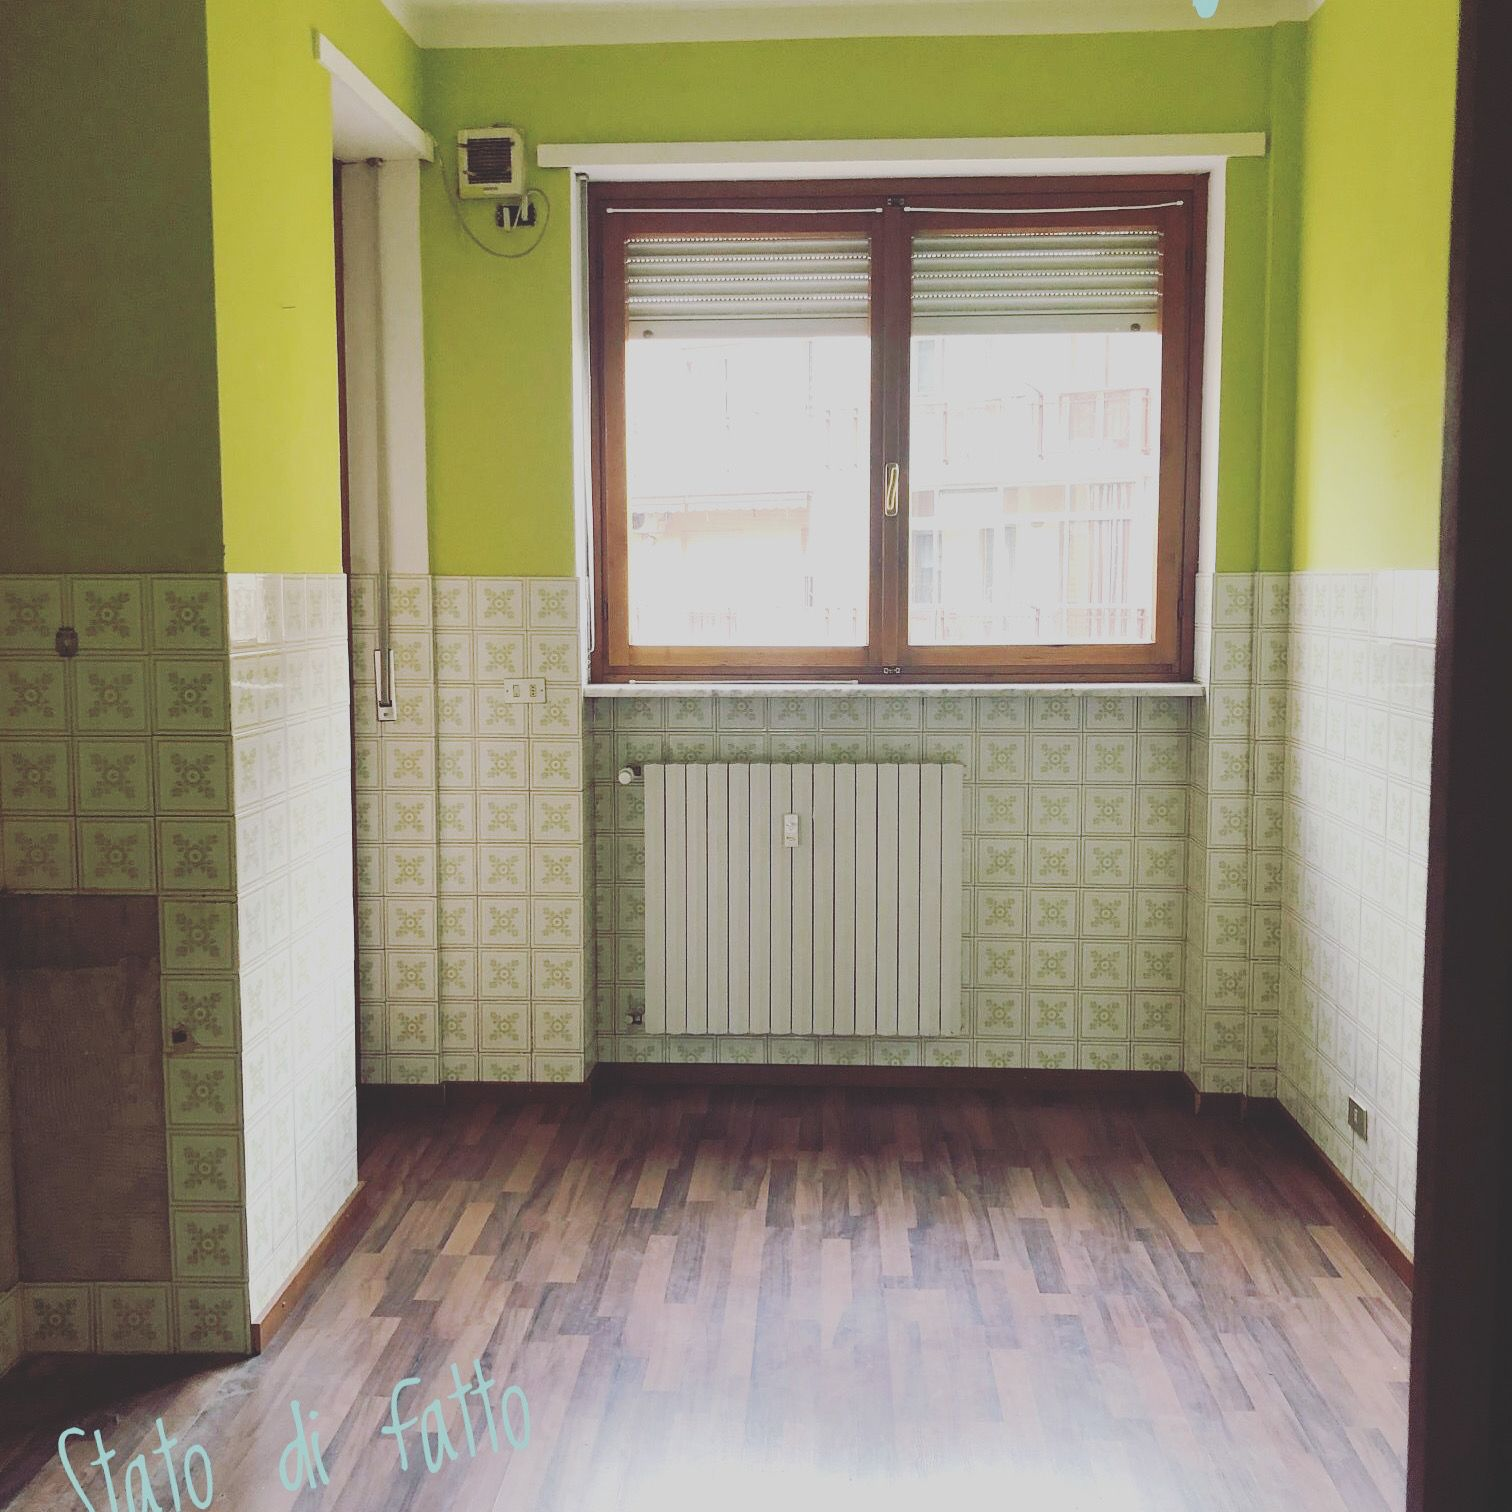 Anni 70 Arredamento homesweethome torino - home staging nel 2020   home staging